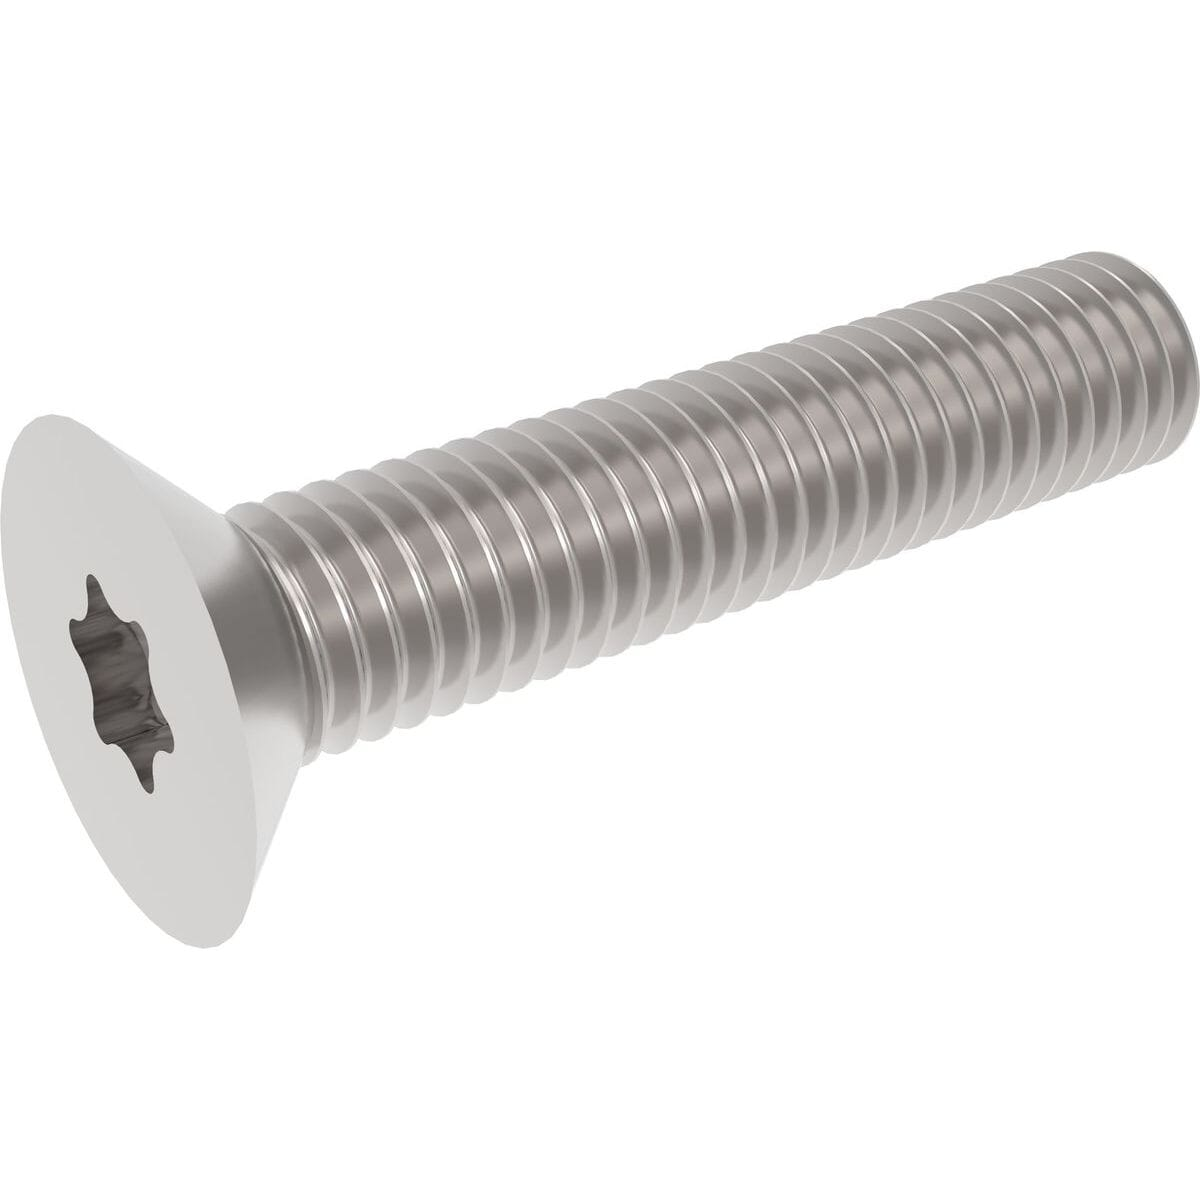 M5 x 60mm Torx Countersunk Screws (ISO 14581) - Marine Stainless Steel (A4)